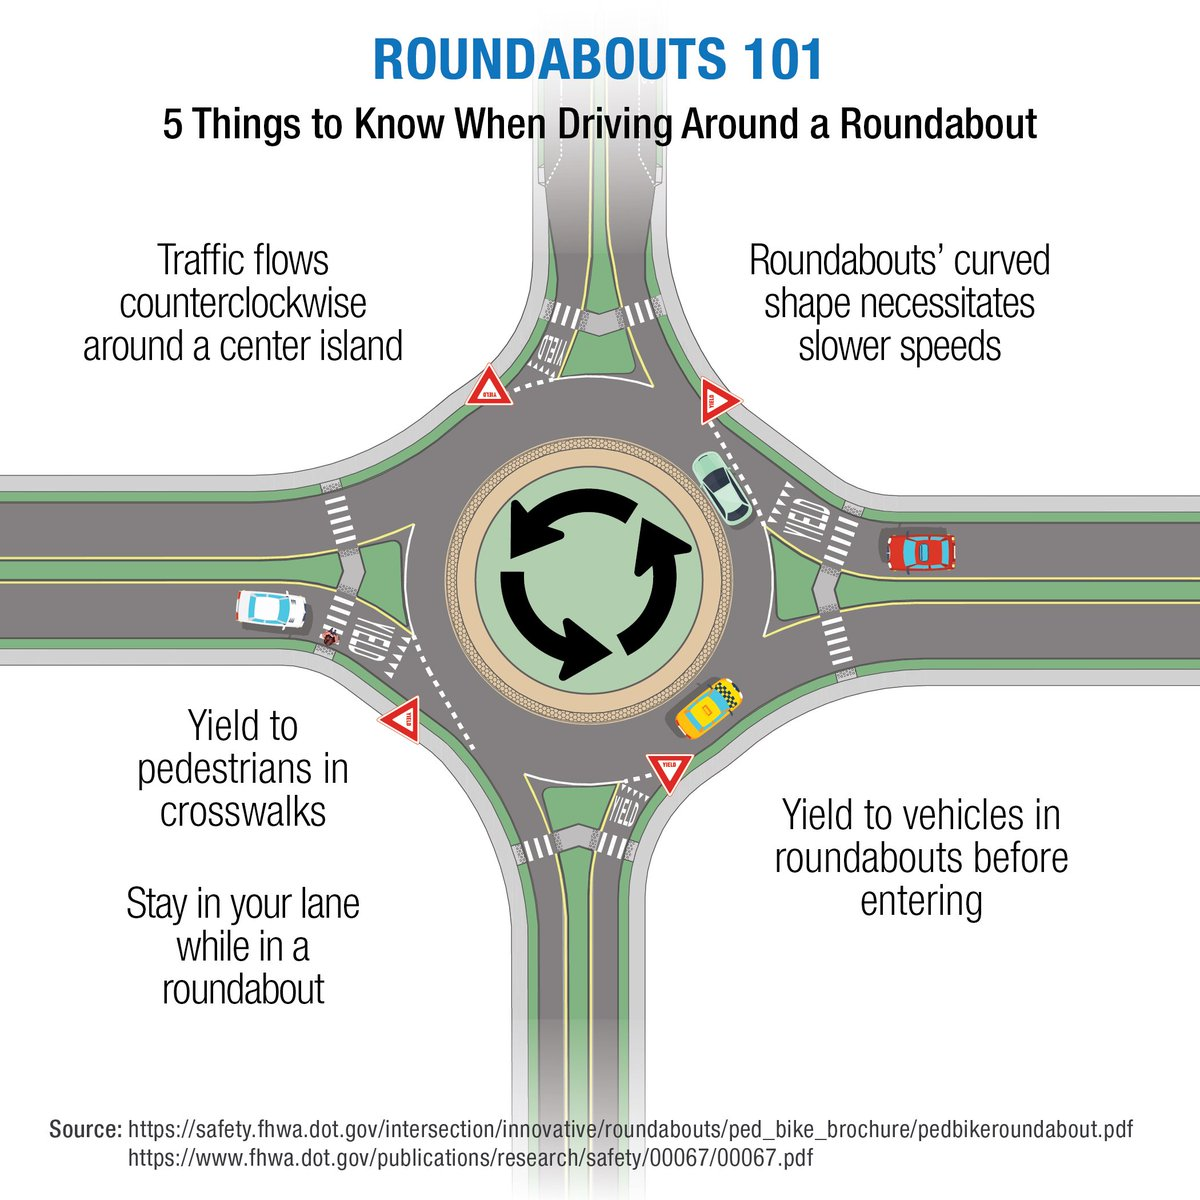 It'South #RoundaboutsWeek and we appreciate them being one more tool in our intersection improvement toolbox!